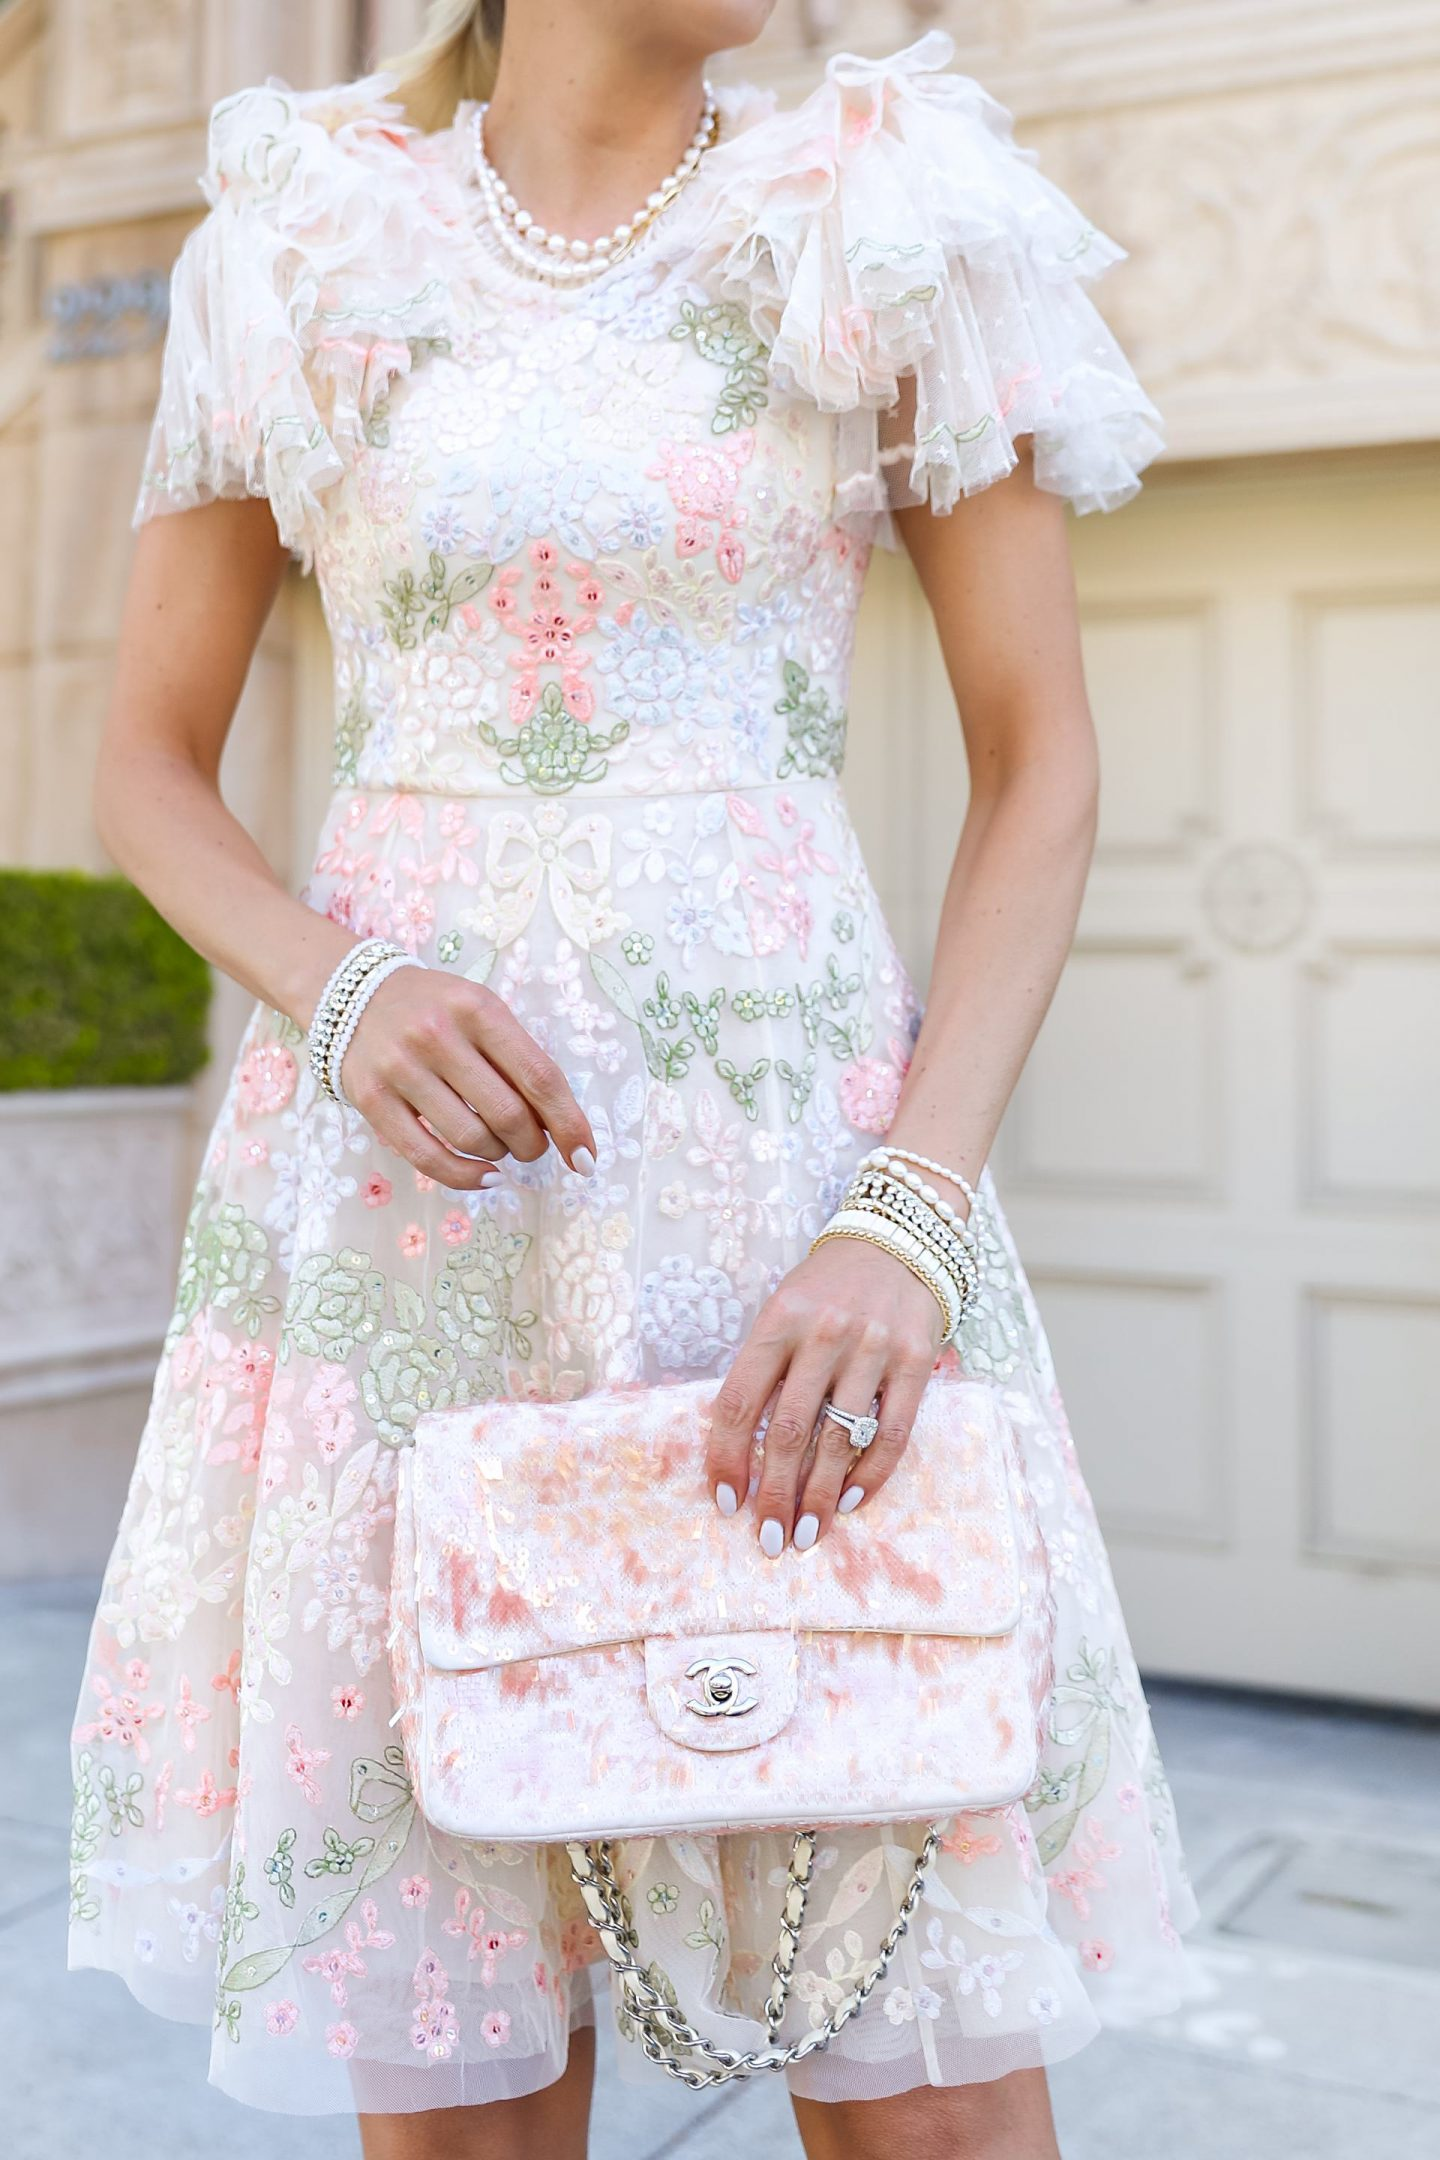 Victoria Emerson bracelet sale, styling Needle & Thread Elin Blossom embroidered tulle mini dress in cream with pearl necklace and neutral bracelets in Pacific Heights, San Francisco. By Lombard & Fifth, Veronica Levy.